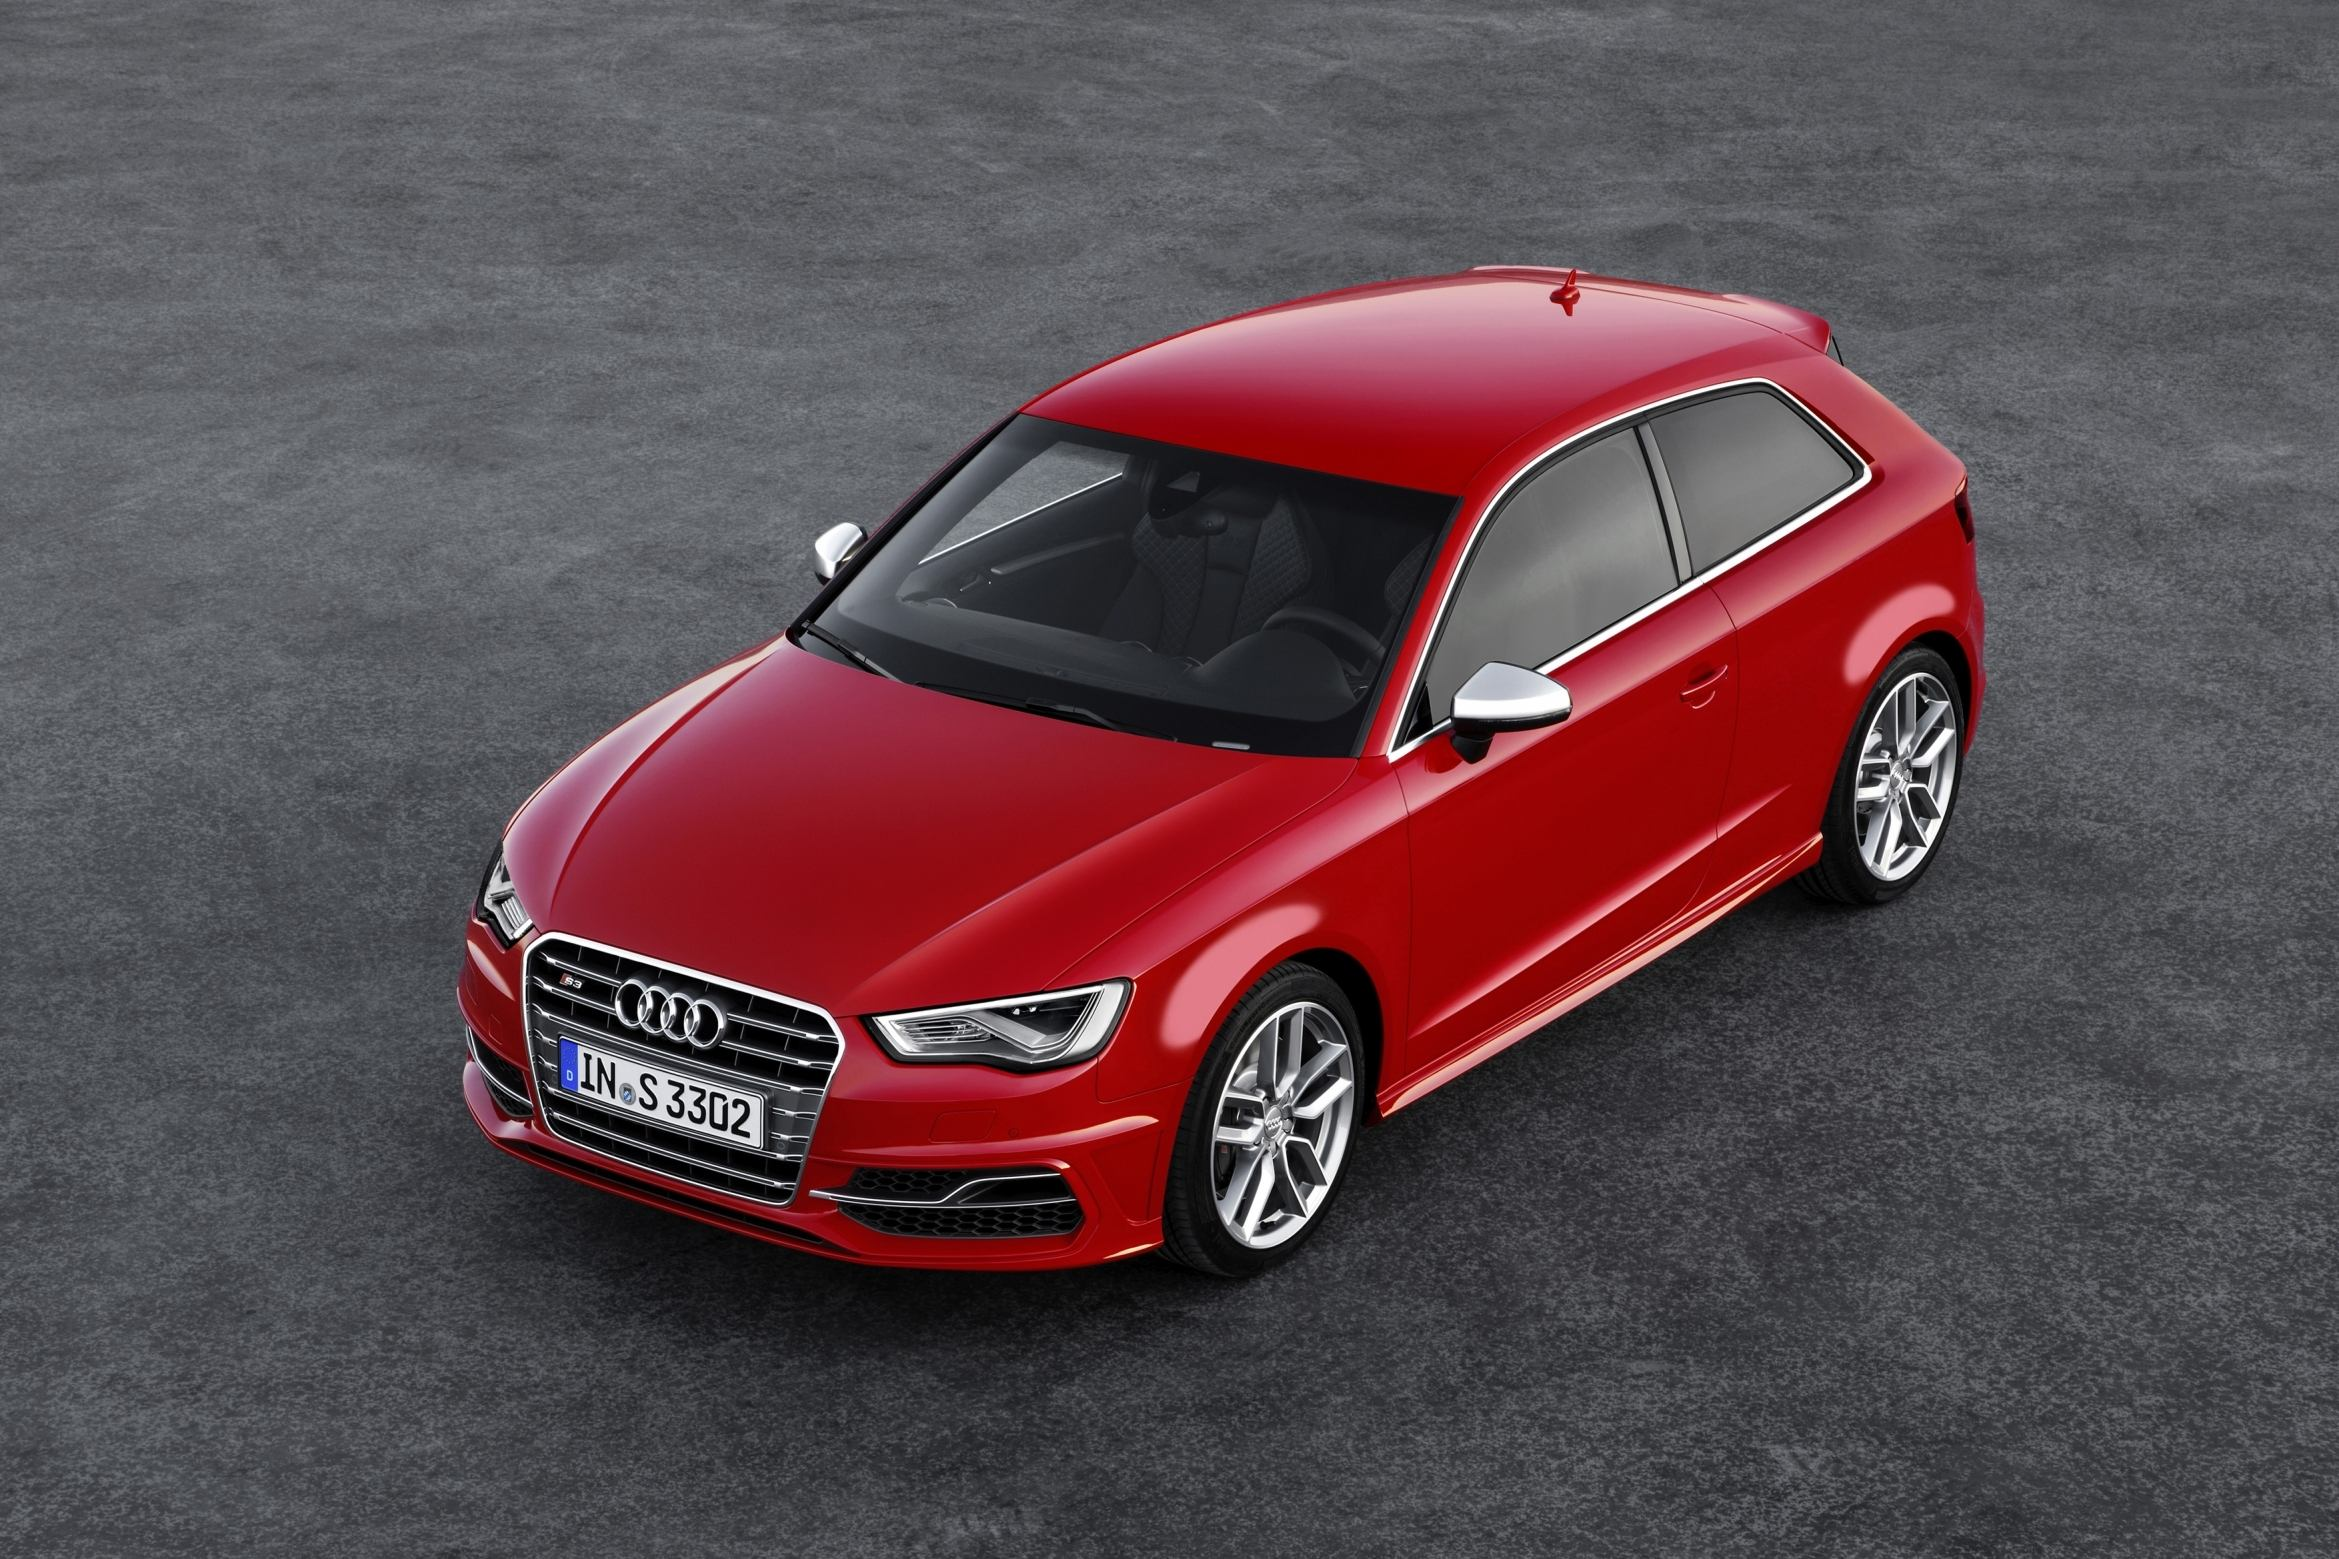 new audi s3 prices and details latest news surf4cars motoring news. Black Bedroom Furniture Sets. Home Design Ideas